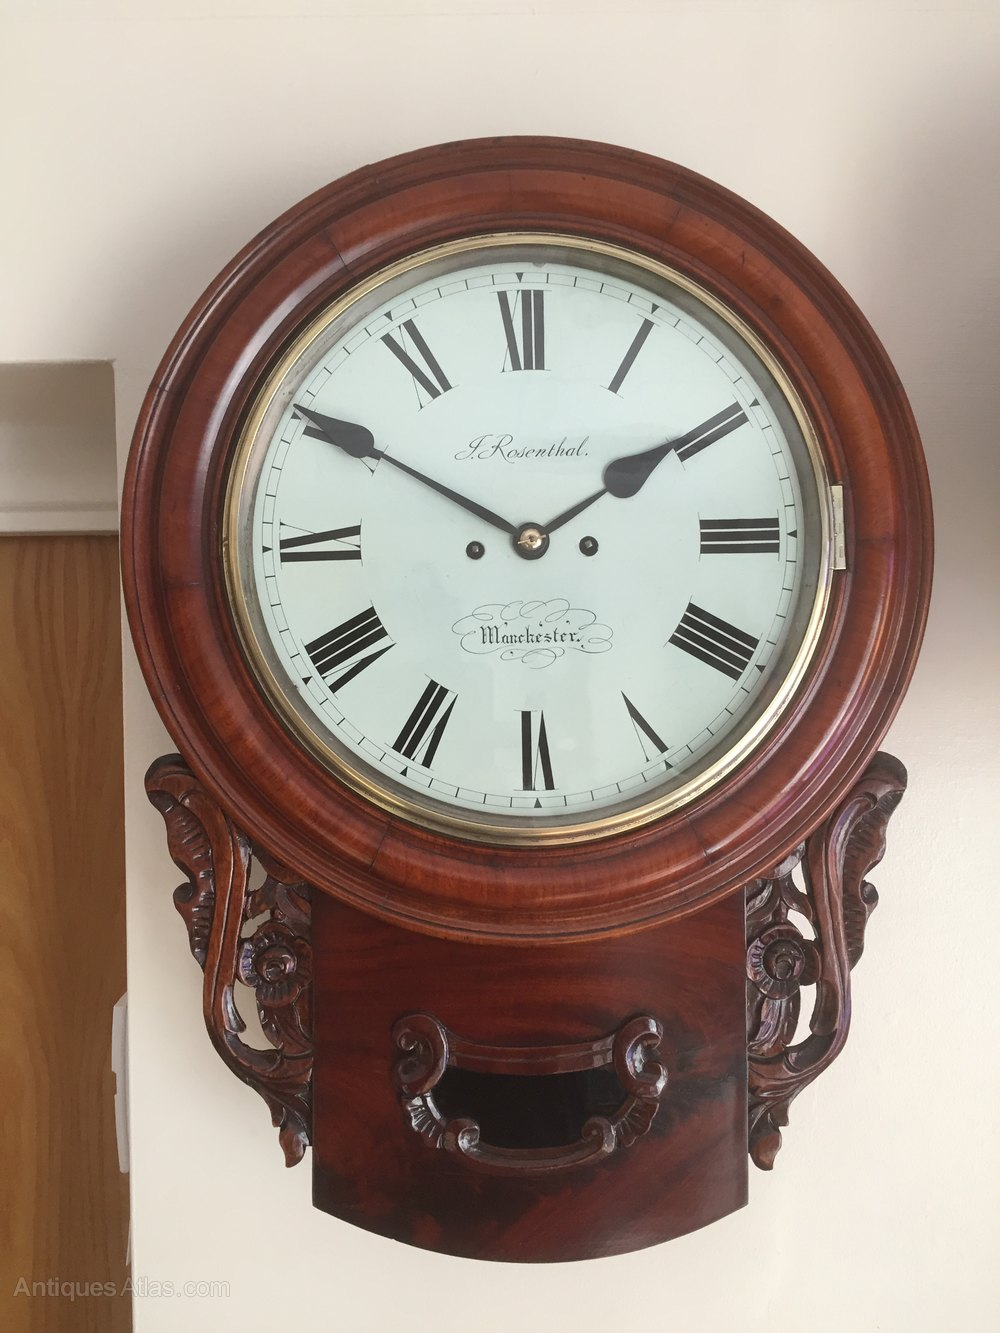 Antiques Atlas J Rosenthal Of Manchester Fusee Wall Clock